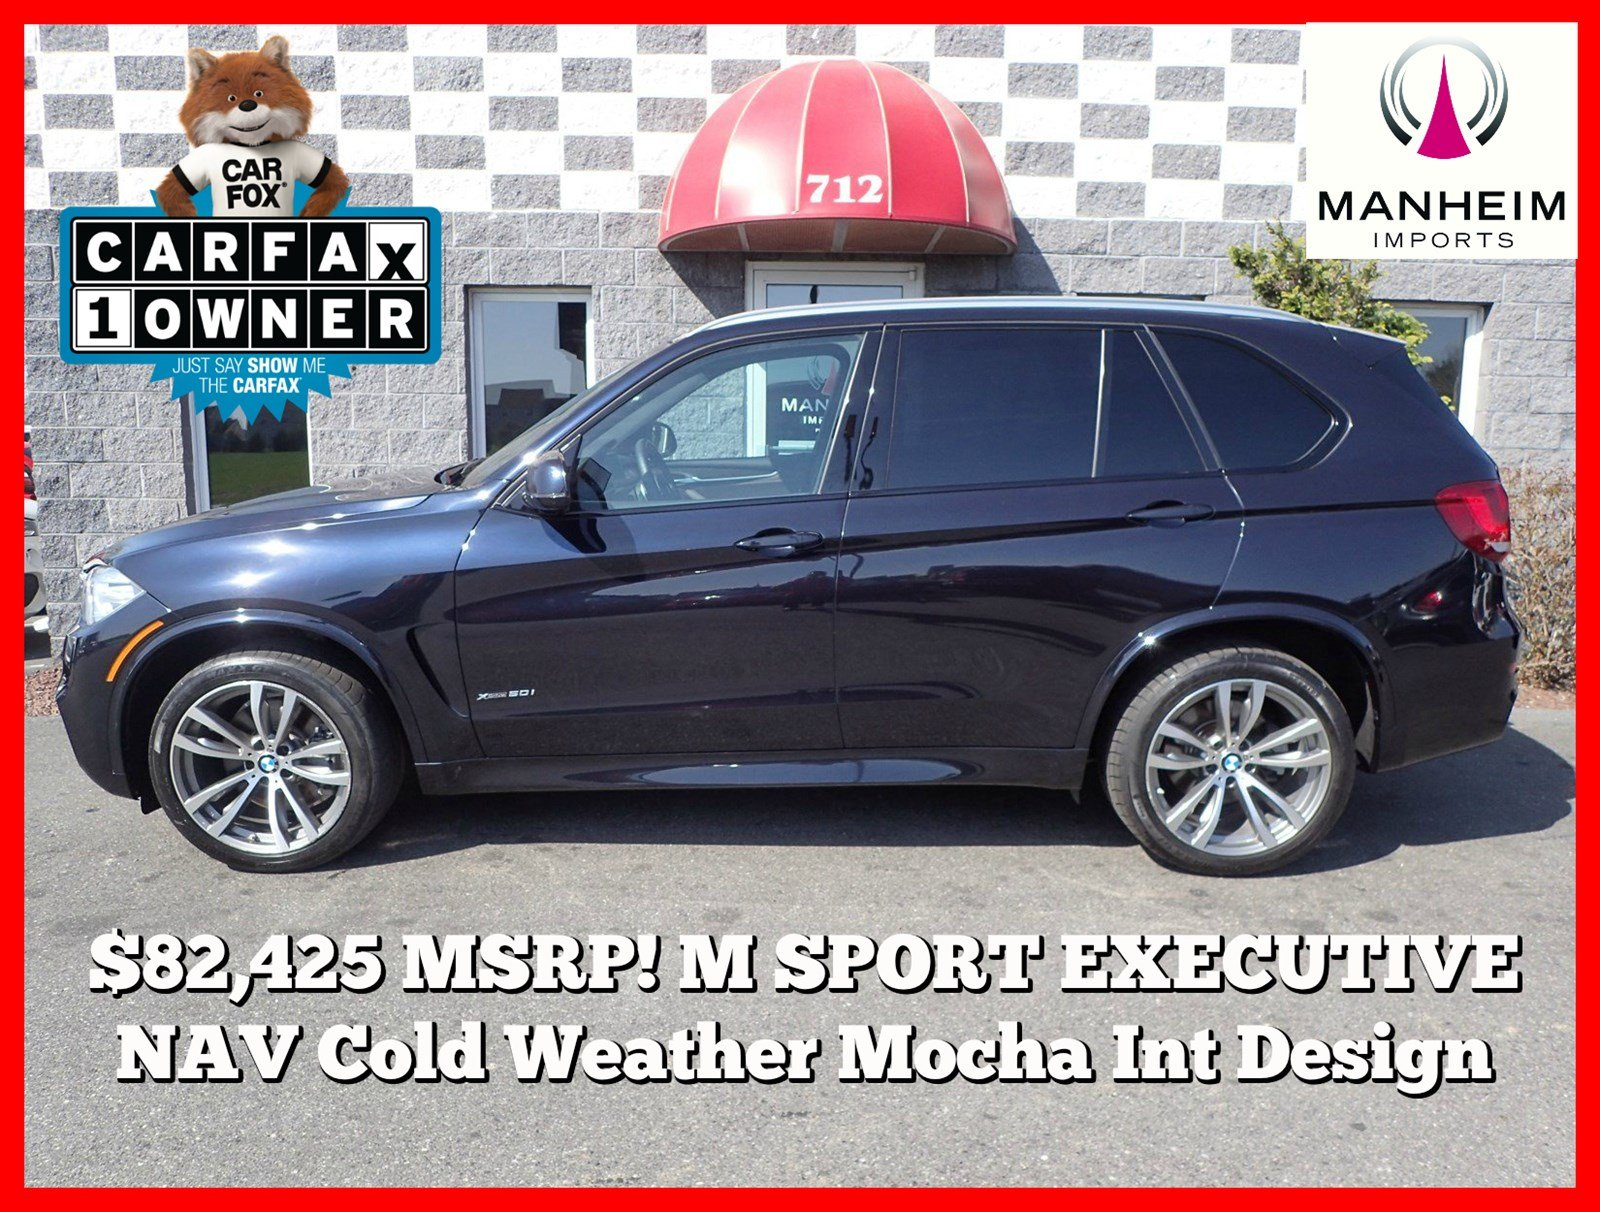 Pre-Owned 2014 BMW X5 xDrive50i M Sport MSRP $82,425!